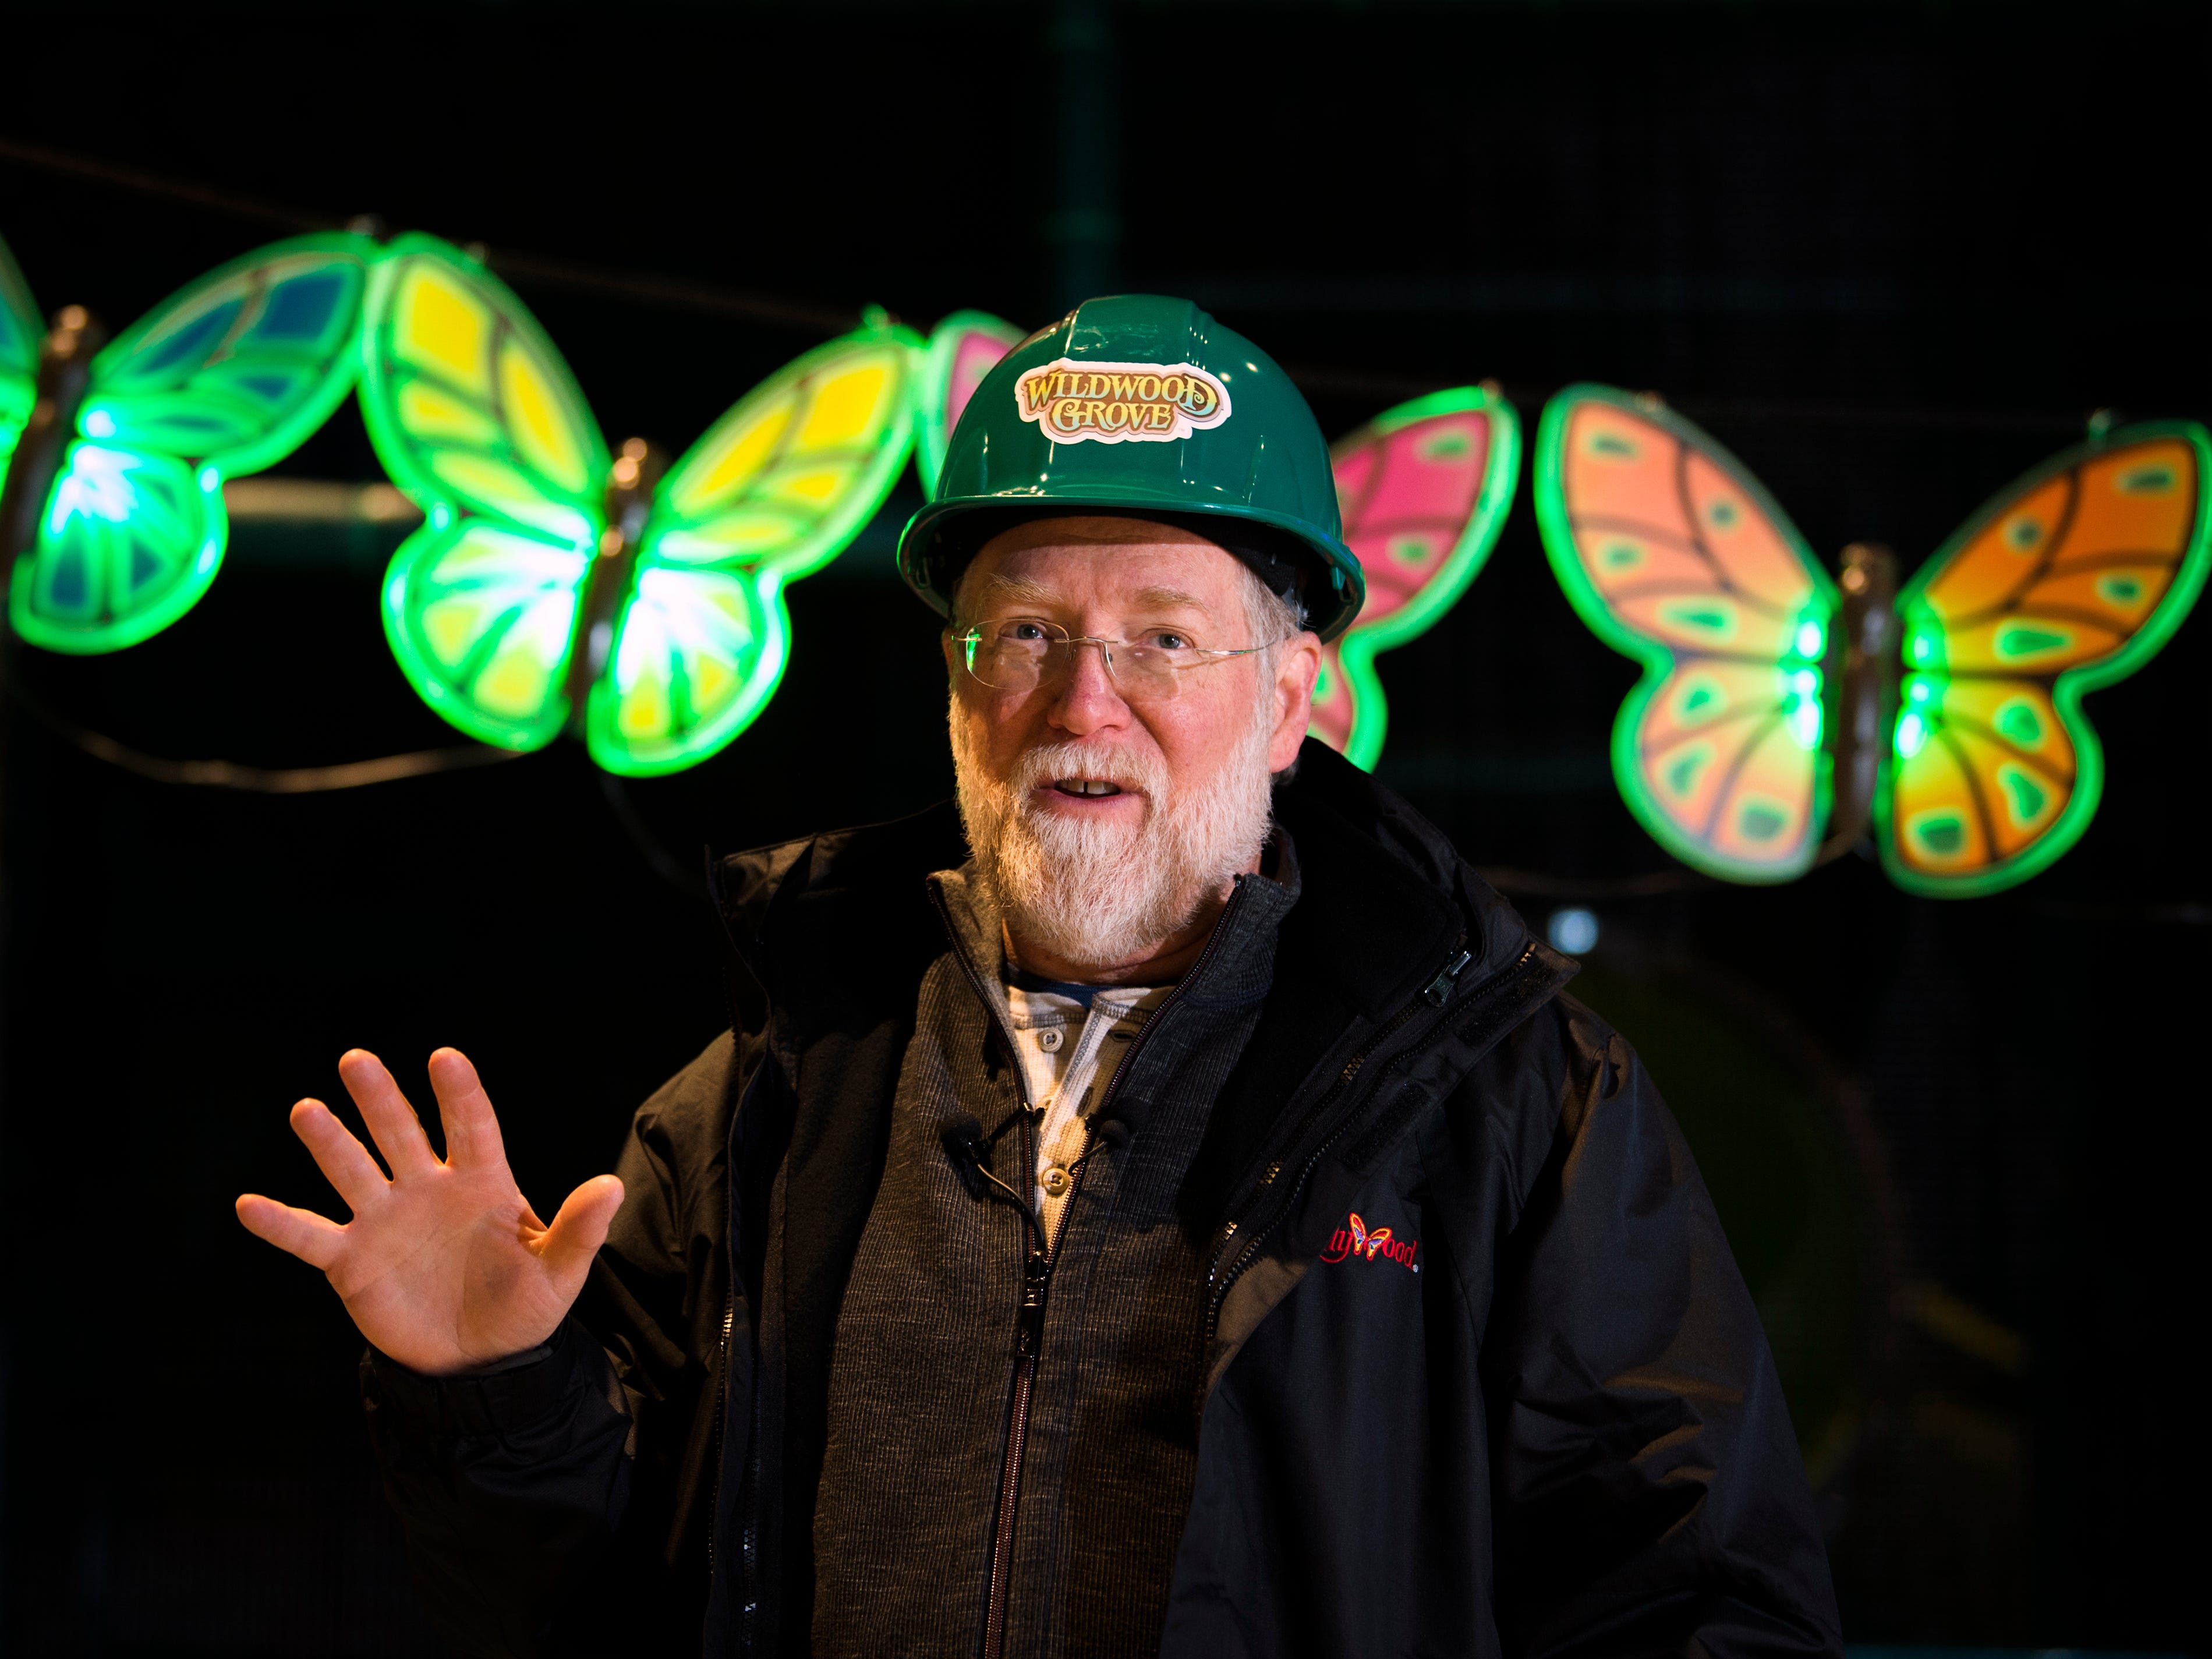 Patrick Brennan, art director for Dollywood's new Wildwood Grove area, speaks in front of the lighted butterflies that will decorate the Wildwood Tree during a construction site tour on Tuesday, February 19, 2019.